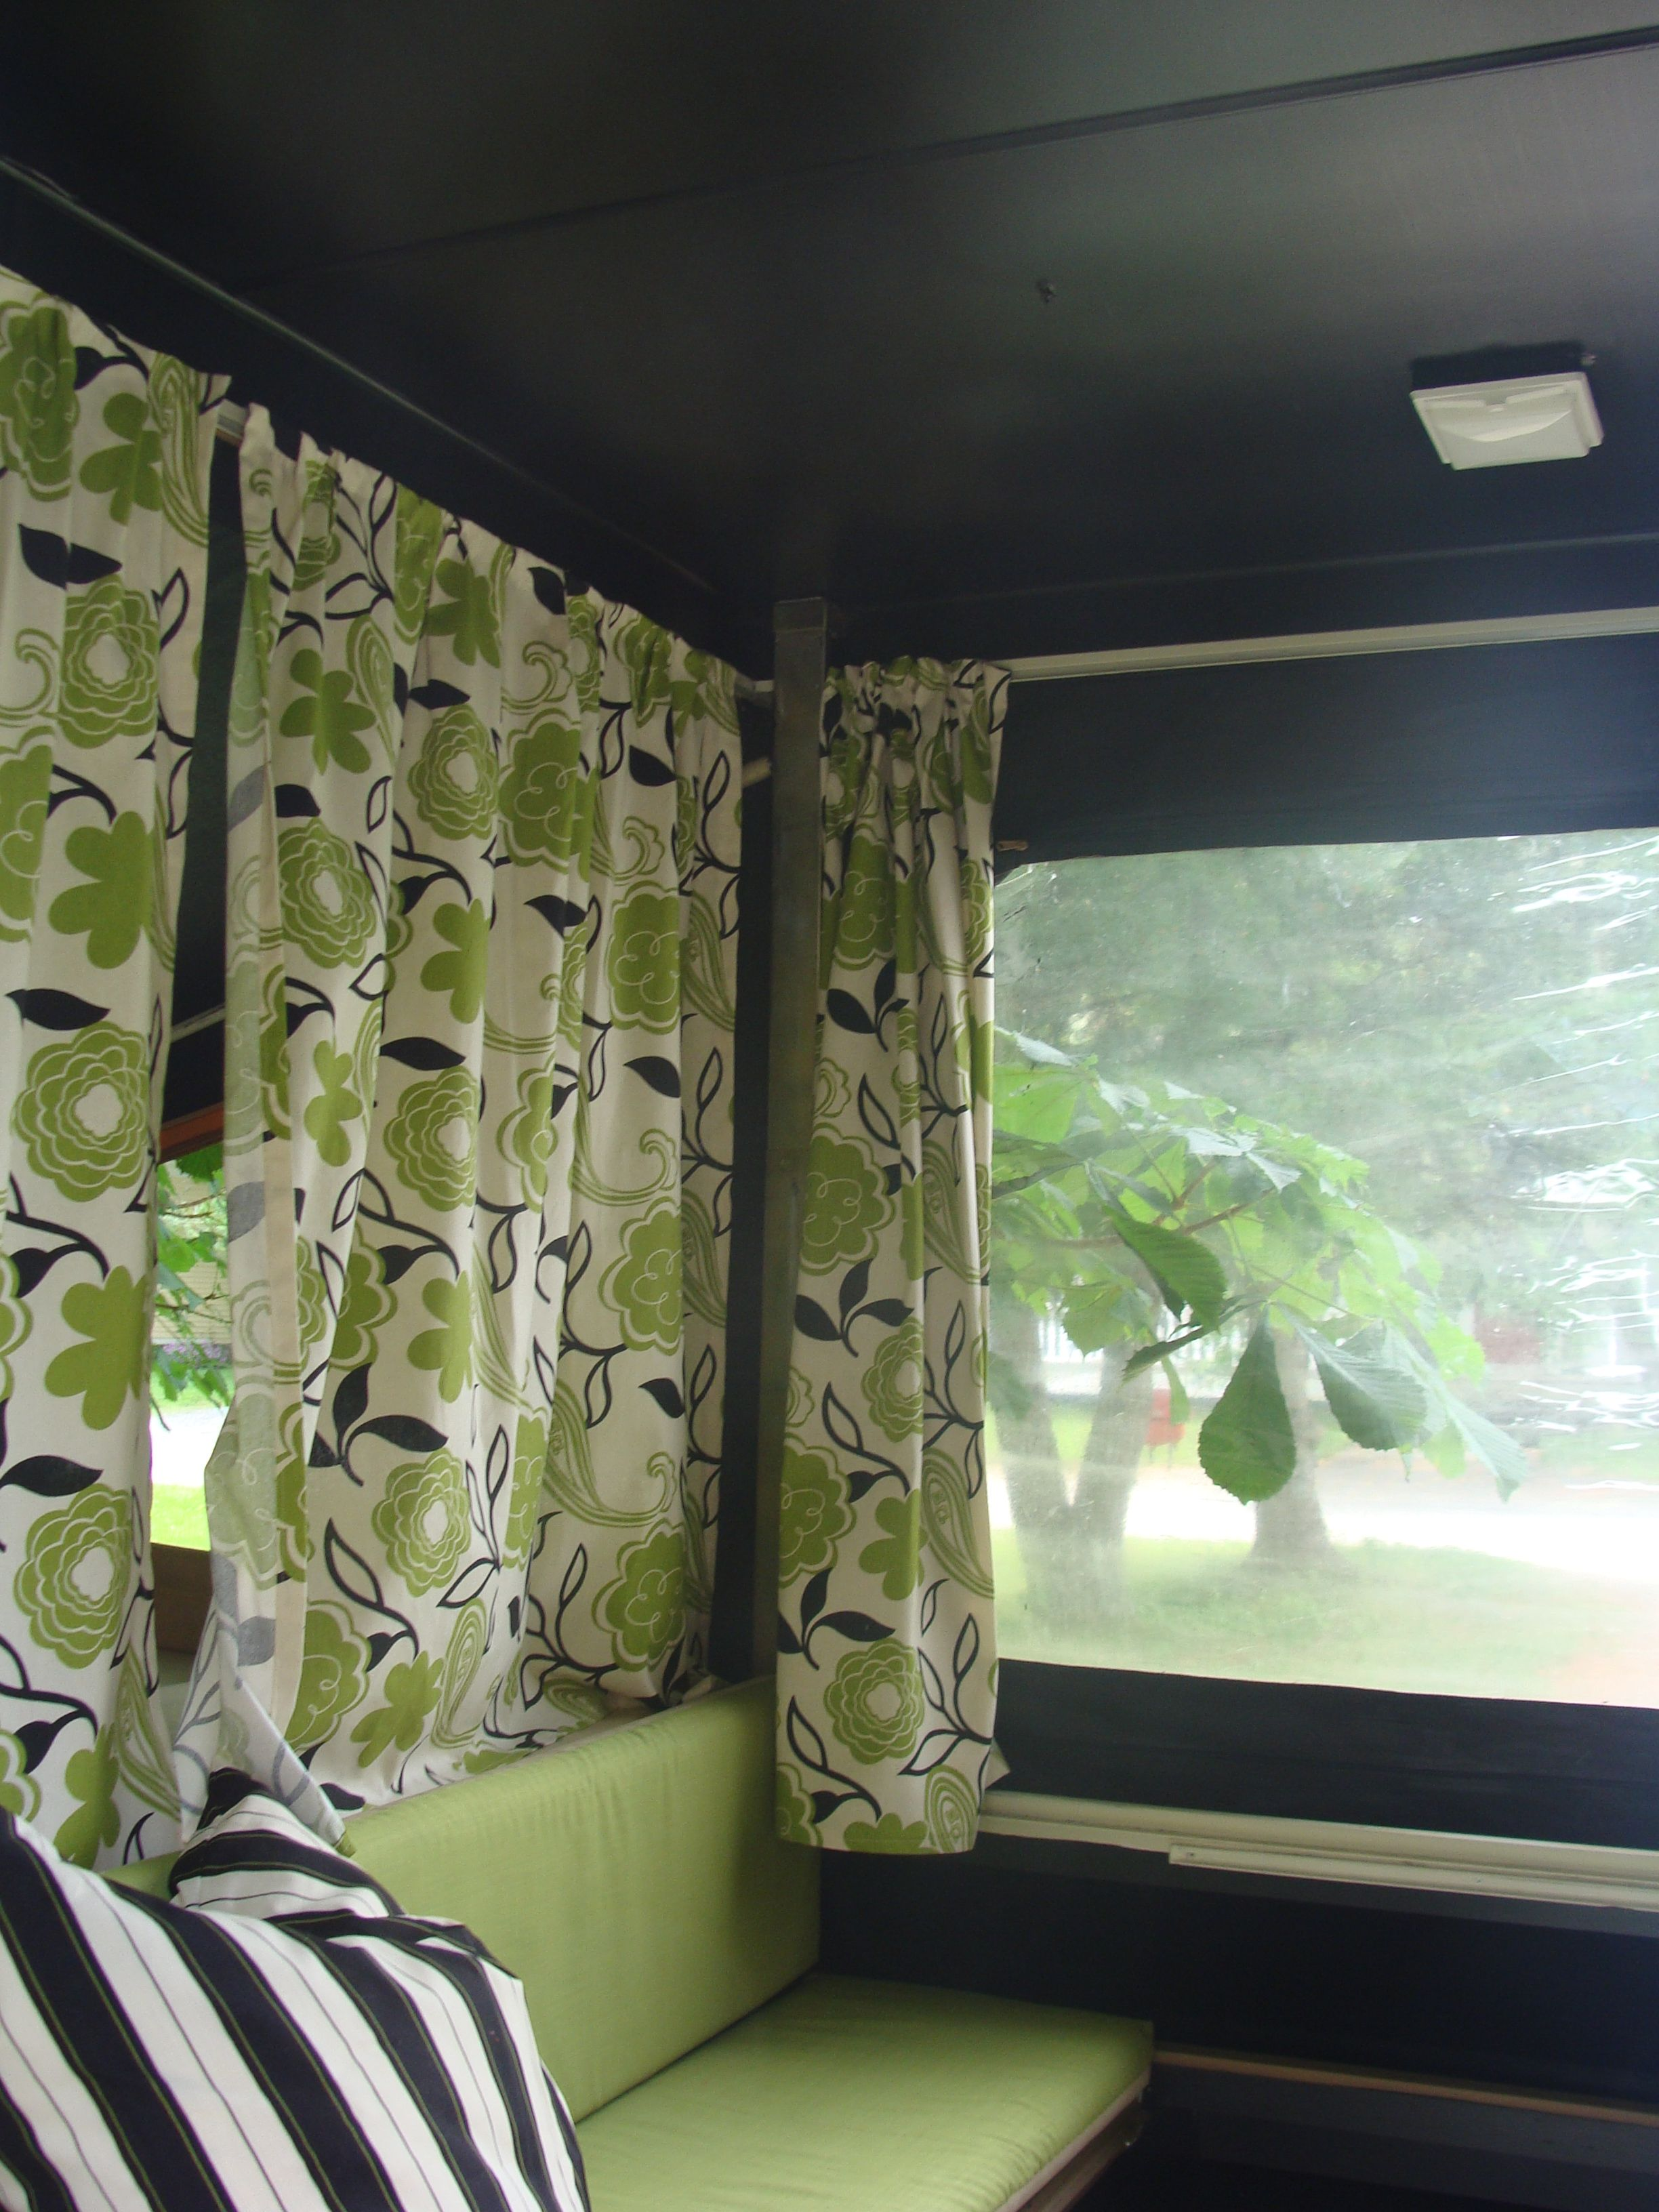 Pop Up Trailer Love The Green Vintage Flower Curtains